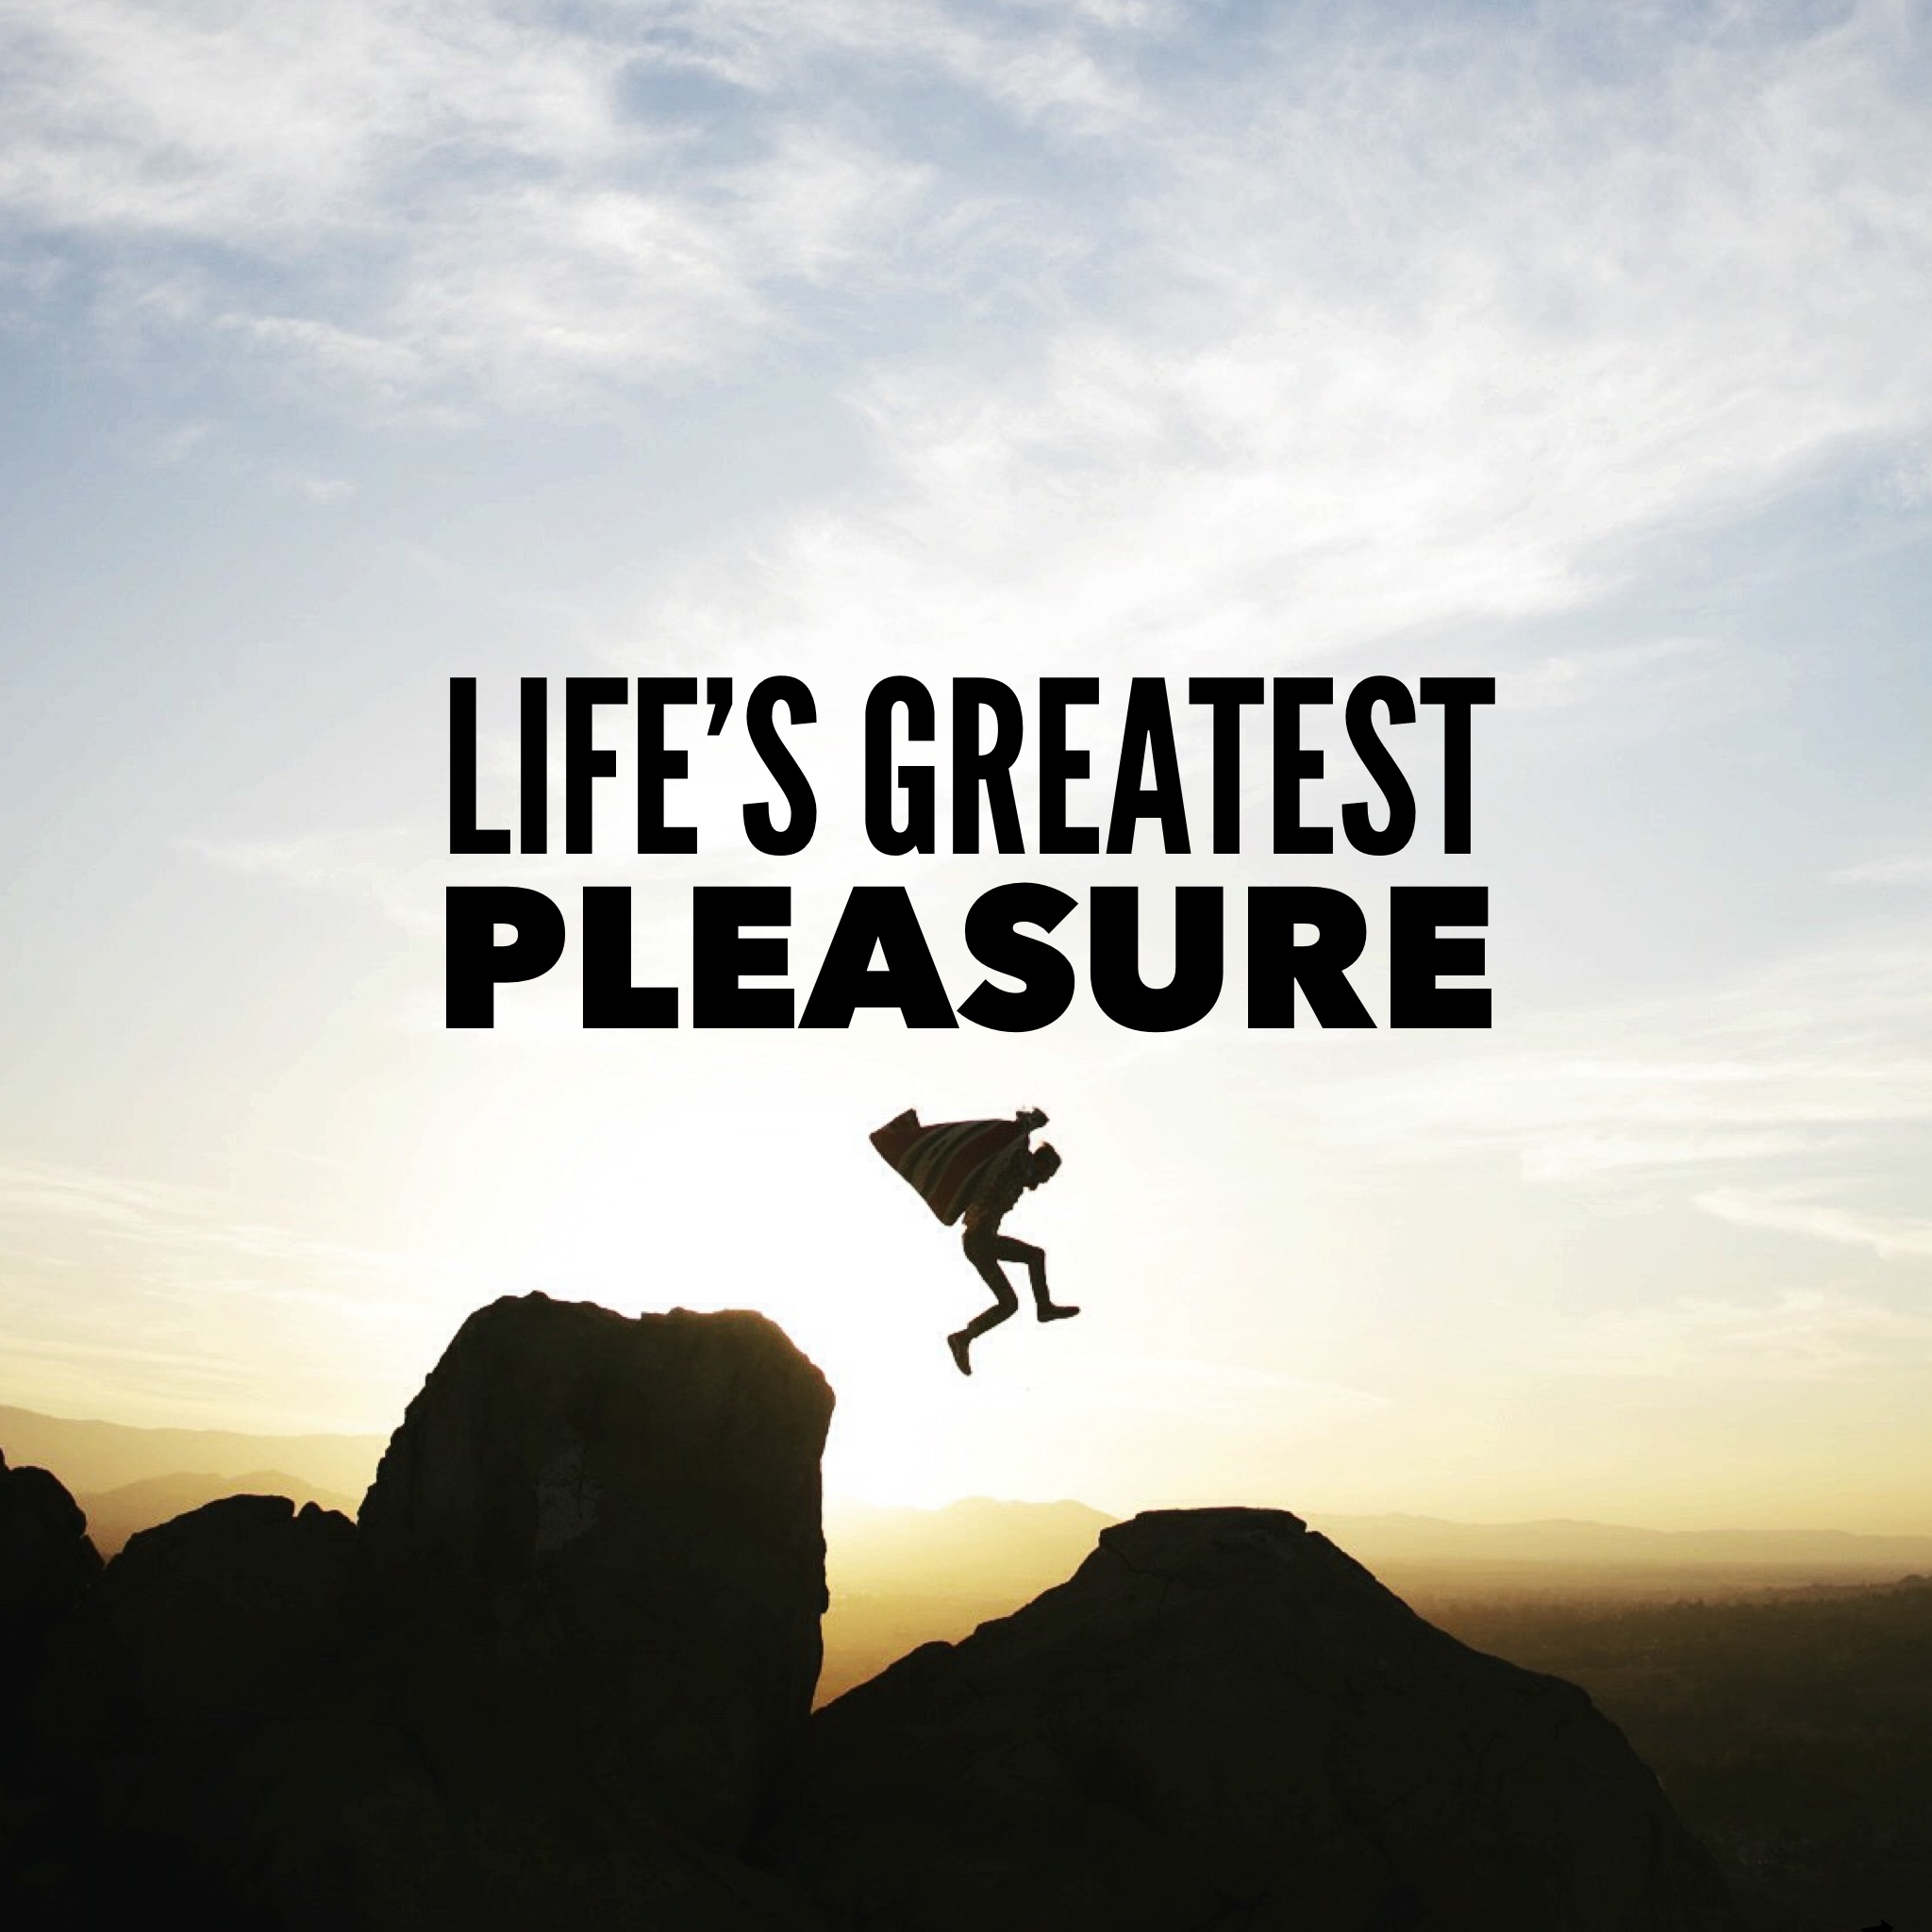 lifegreatestpleasure